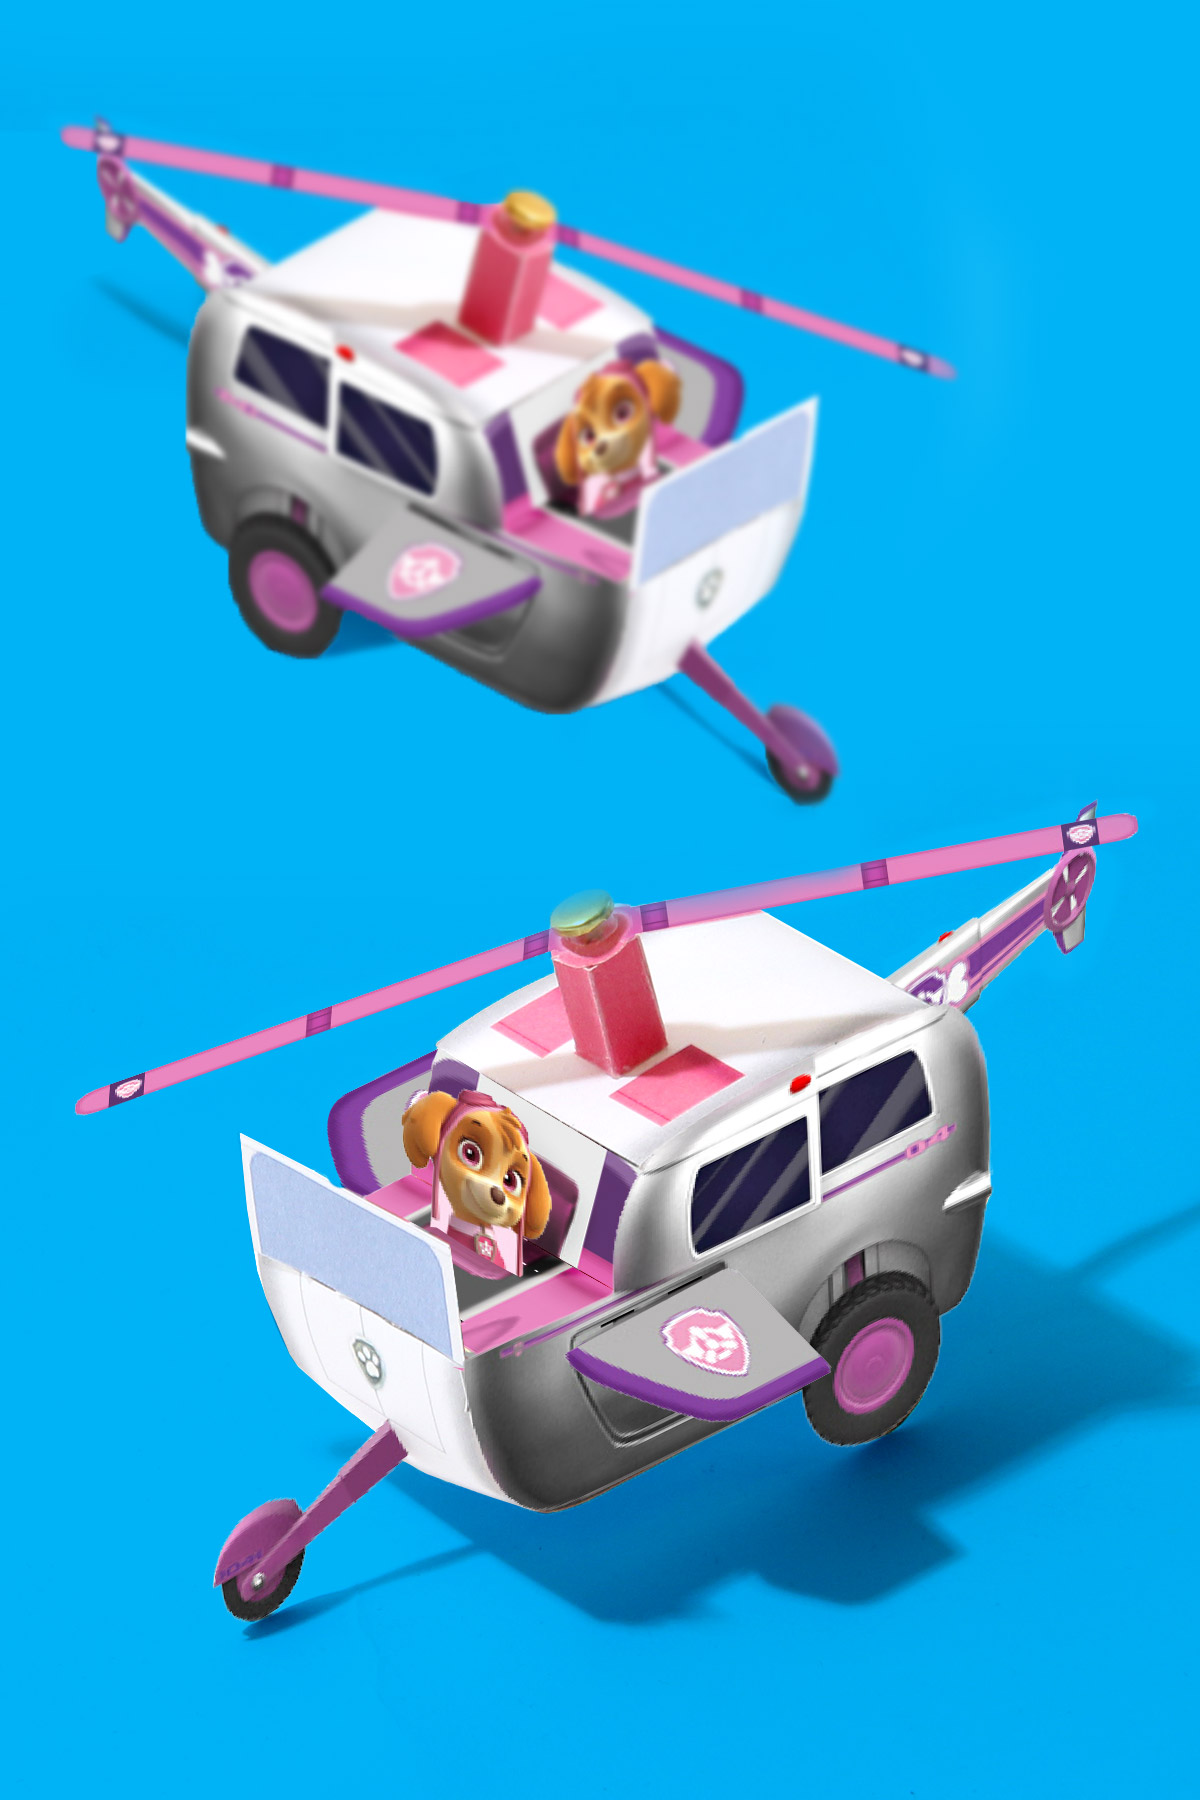 PAW Patrol Skye Vehicle Toy Template